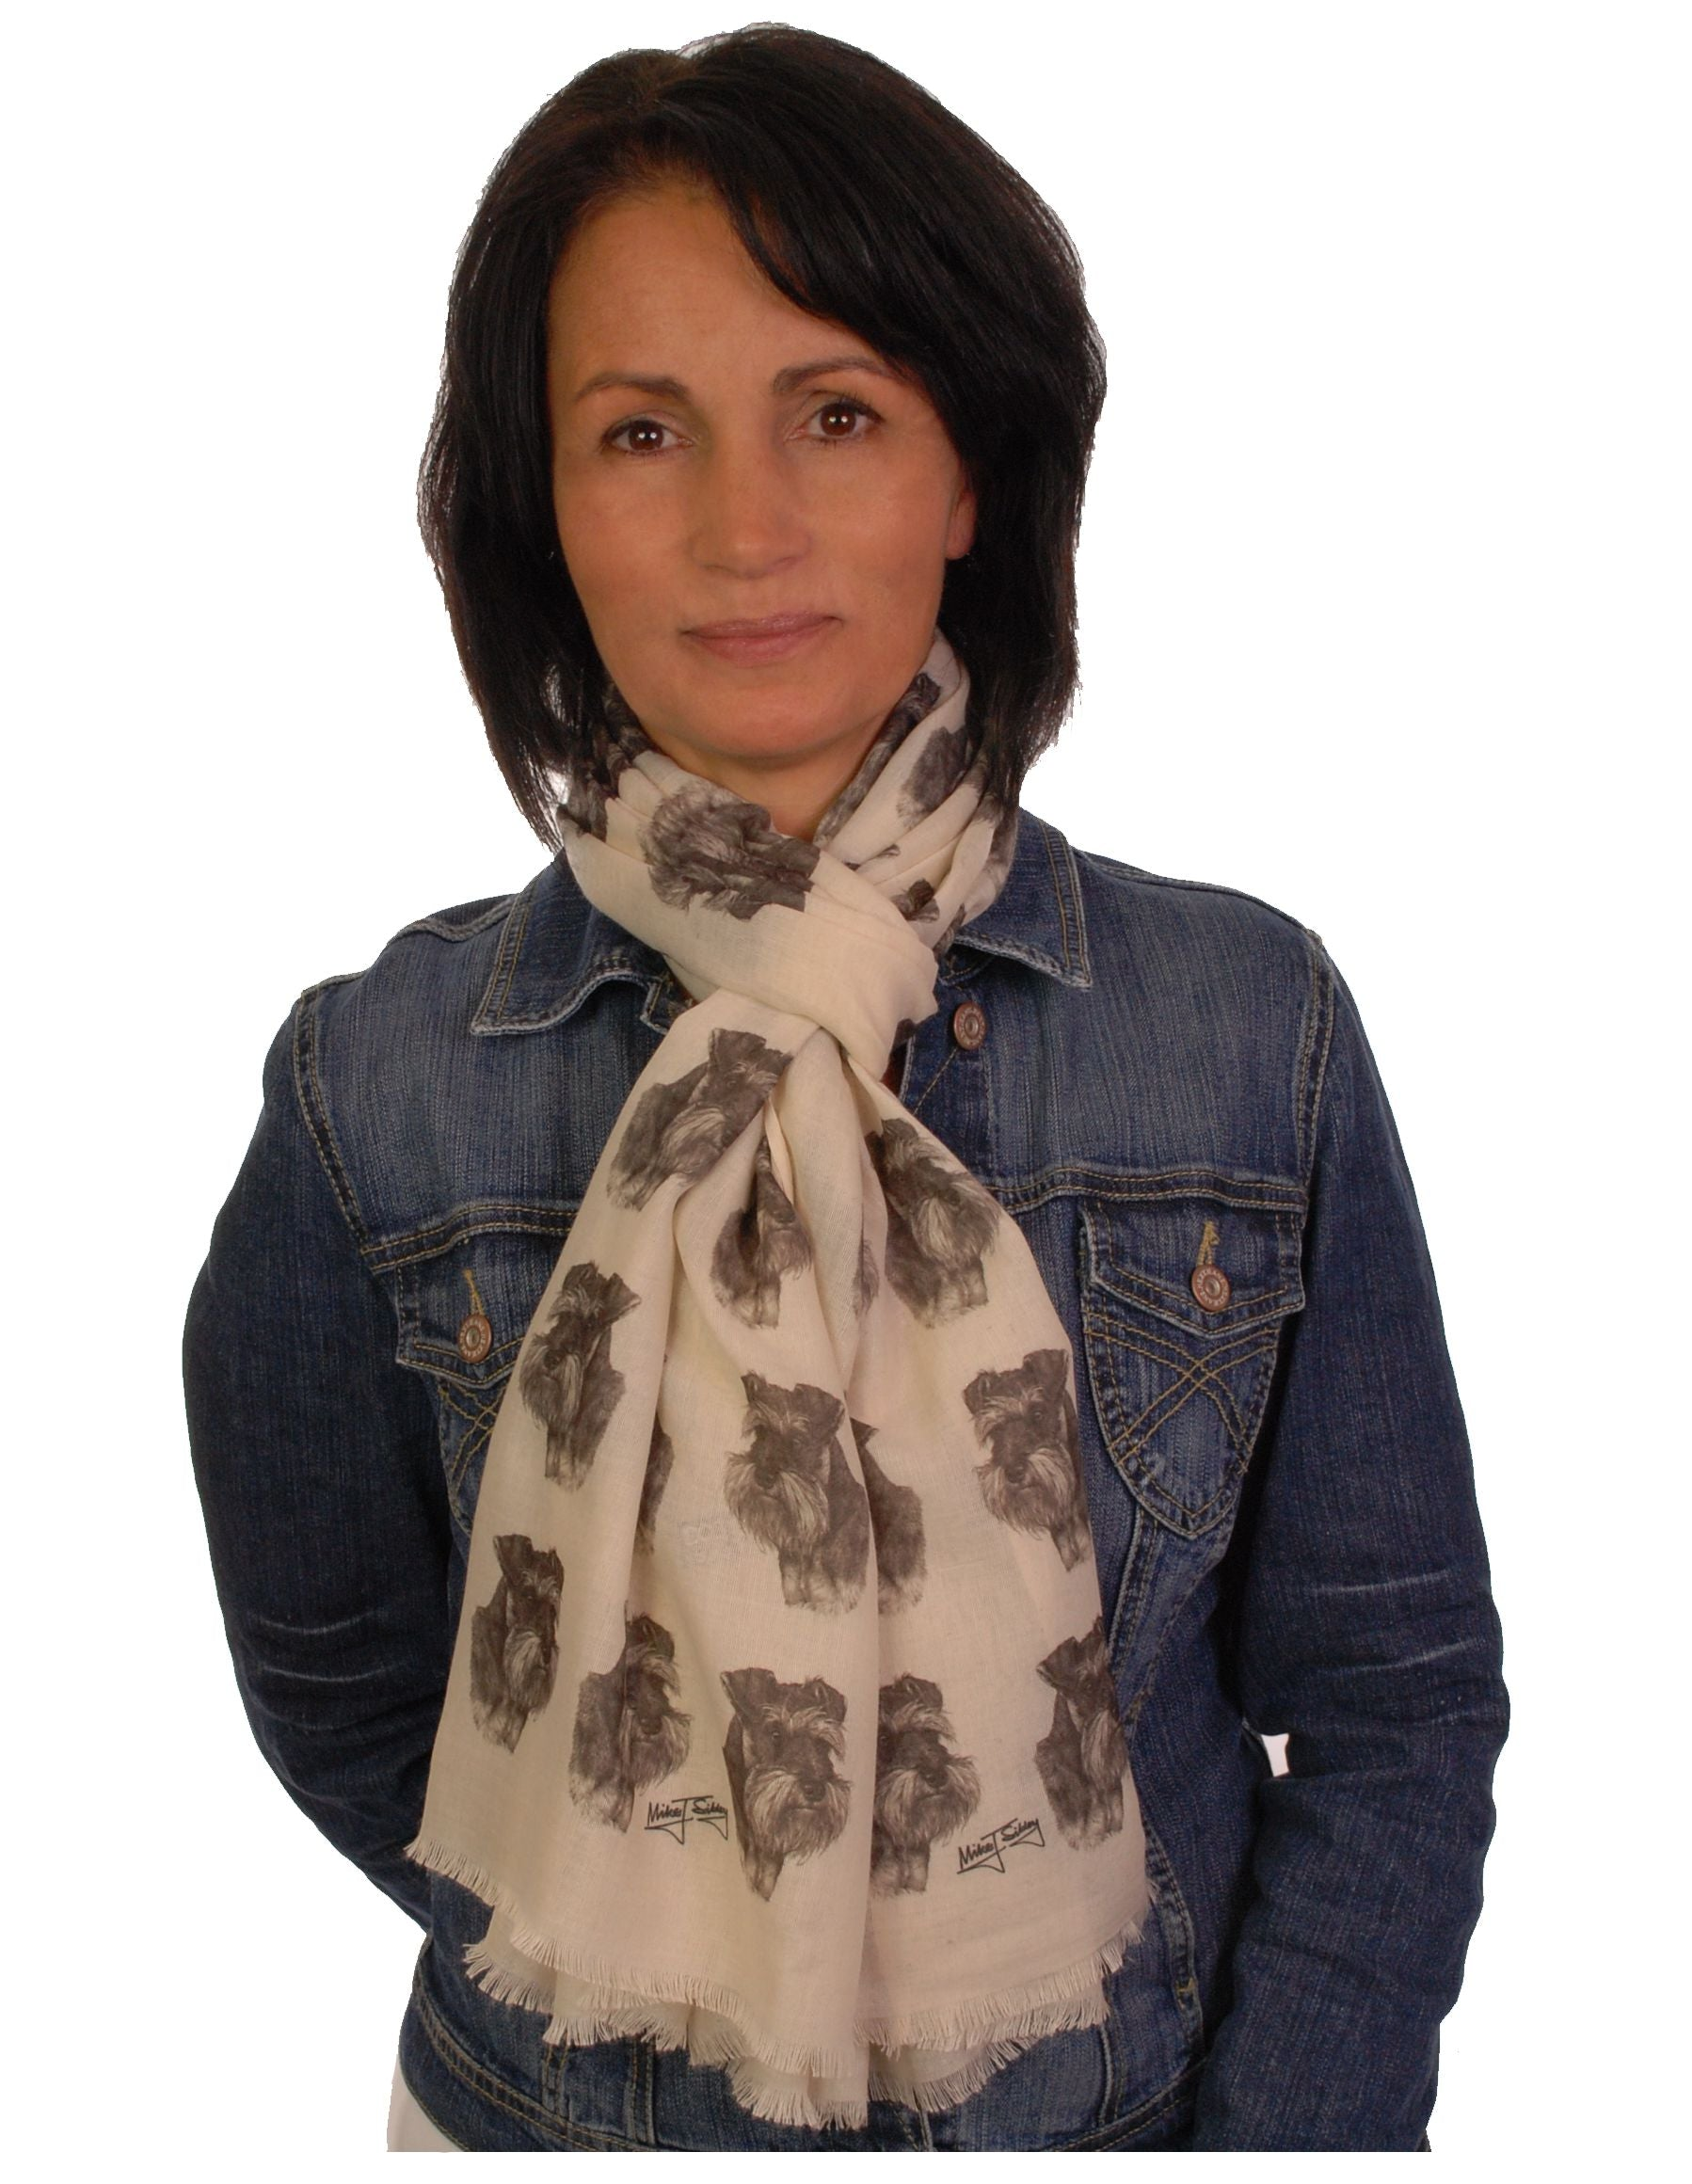 Schnauzer Scarf - Mike Sibley Schnauzer Design Ladies Fashion Scarf - Hand Printed In The UK